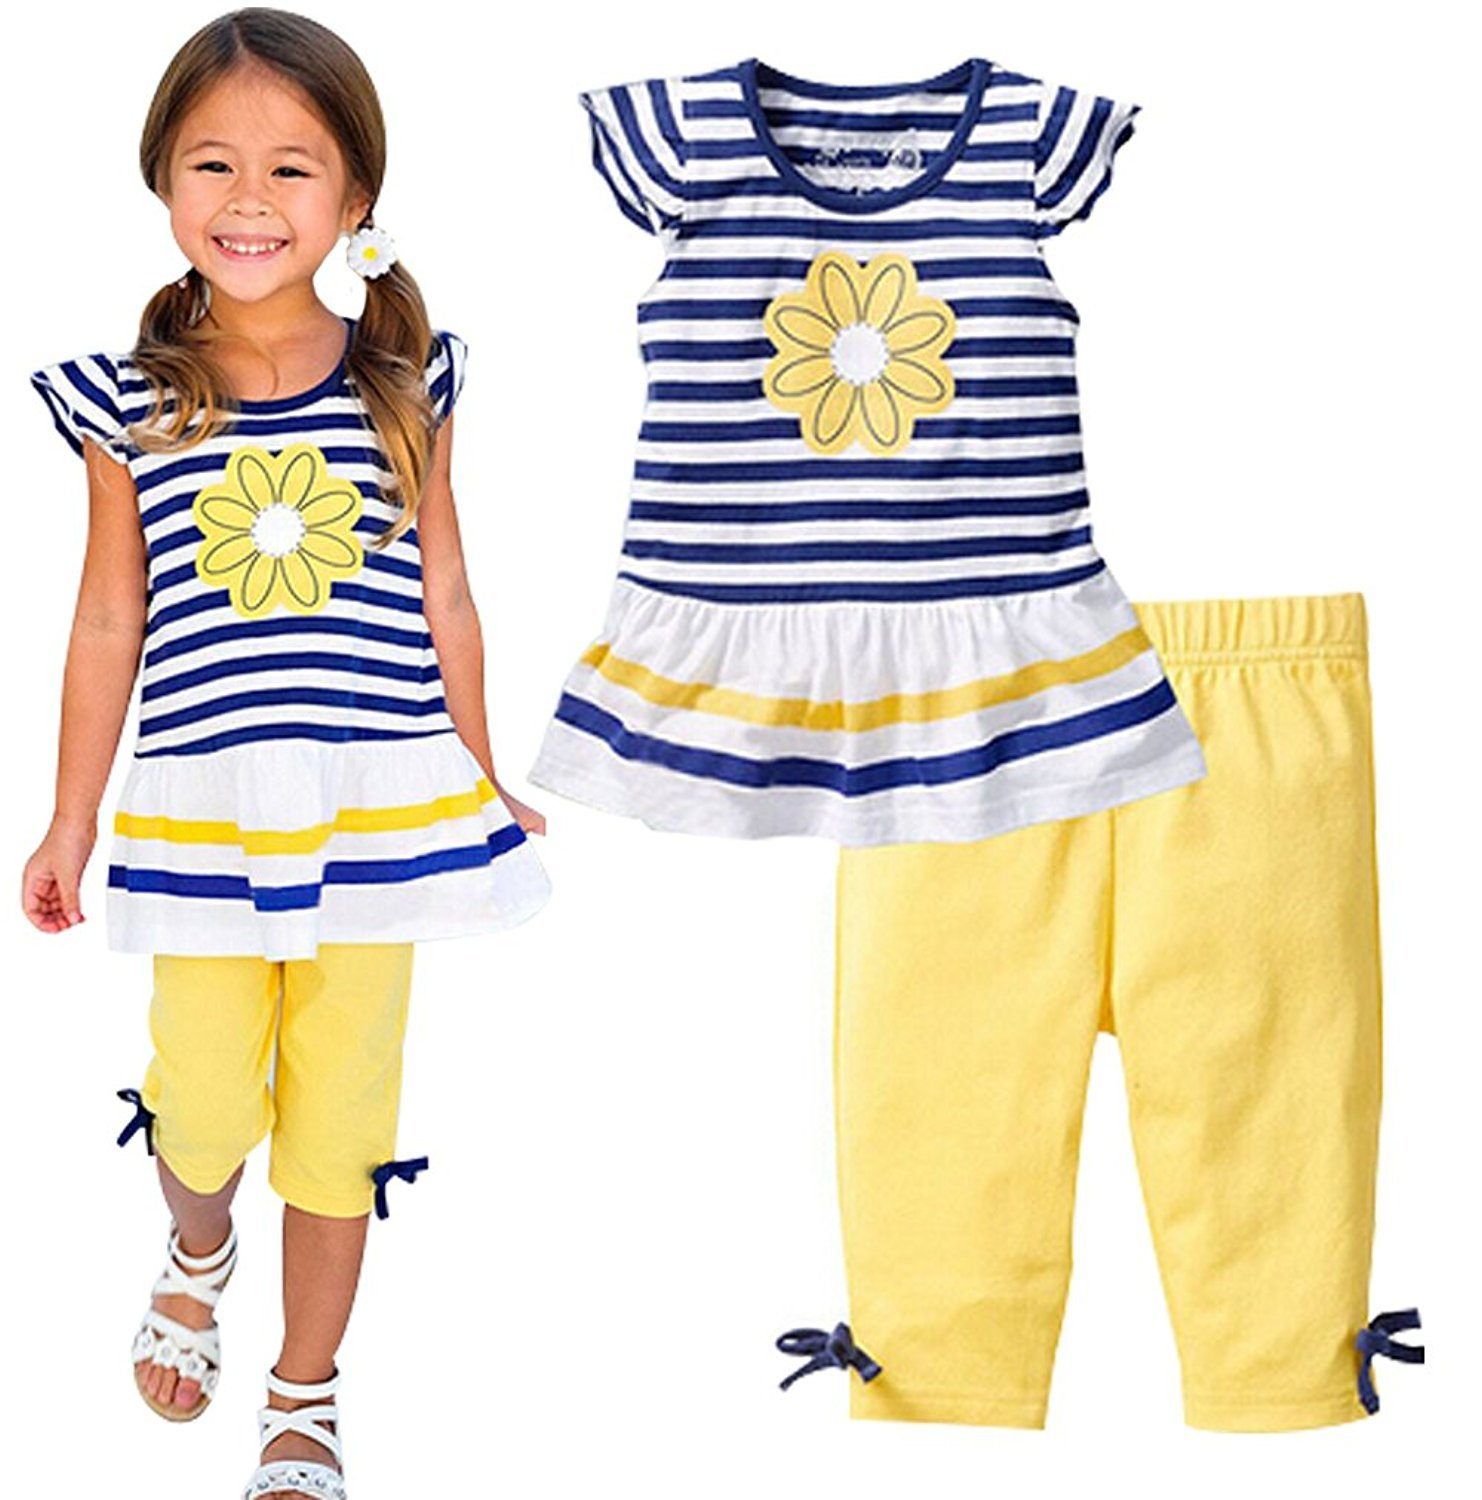 Kids Girls Summer Floral Striped Short Sleeve T-shirt Shorts Pant Casual Outfits BANGELY J070